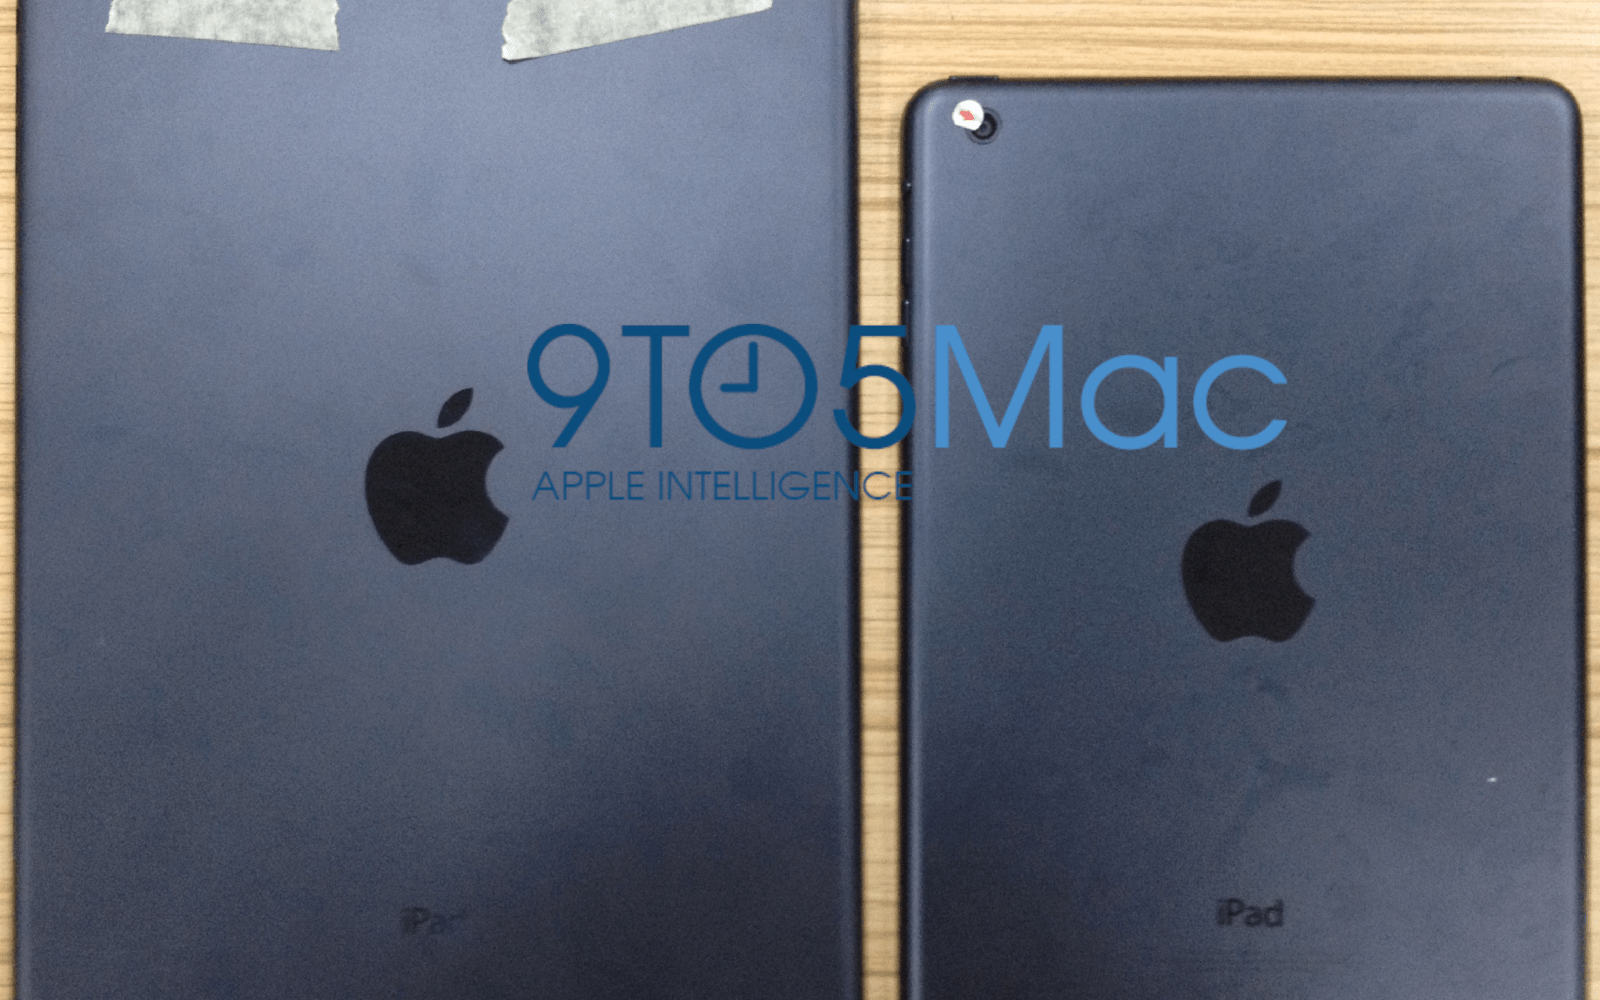 Redesigned 9.7-inch iPad to ship in Q3 with new iPad mini to follow by holiday season?